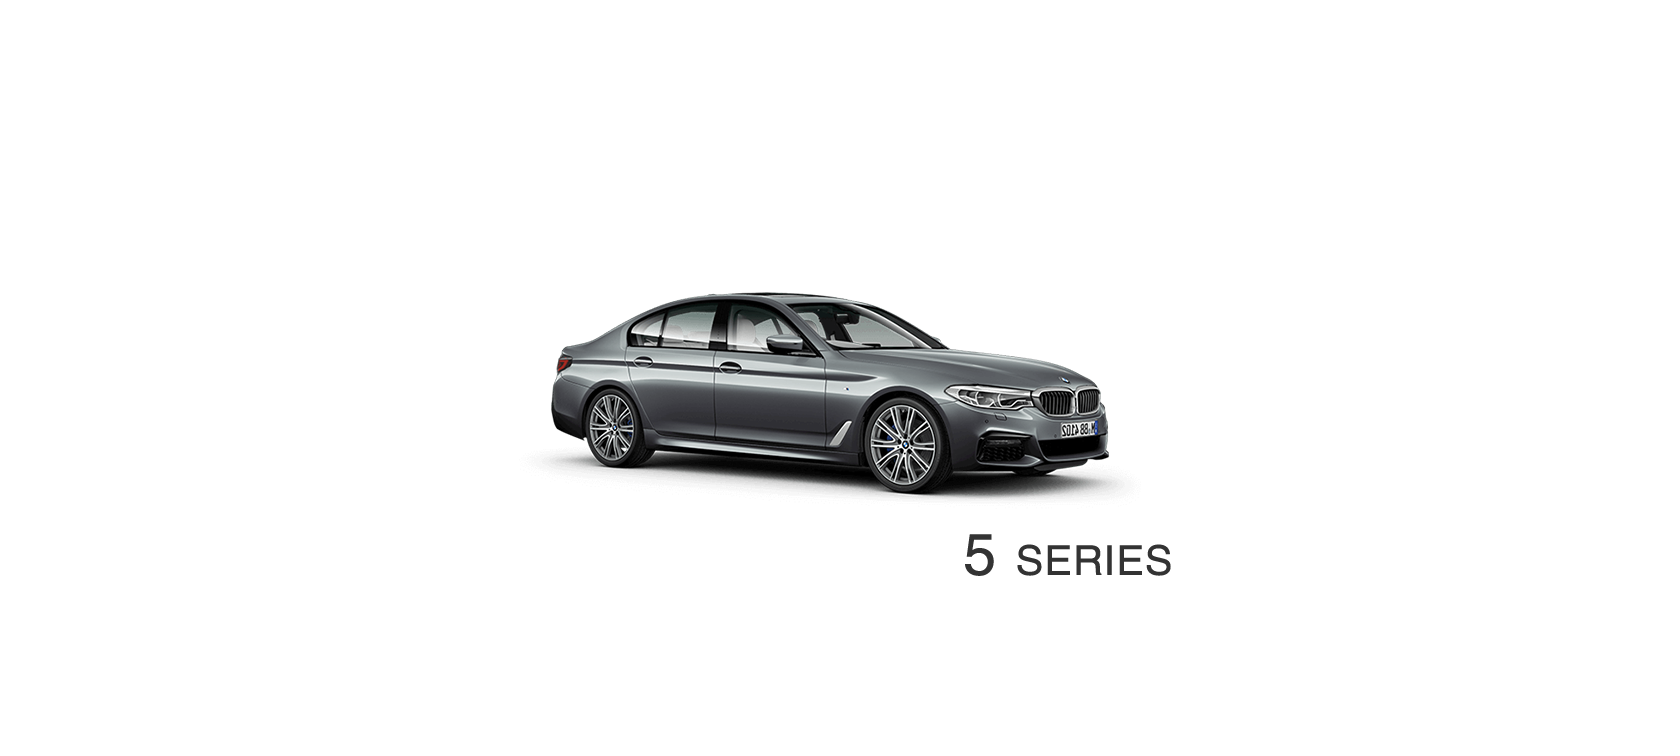 BMW 5 Series | Headlight lens plastic covers